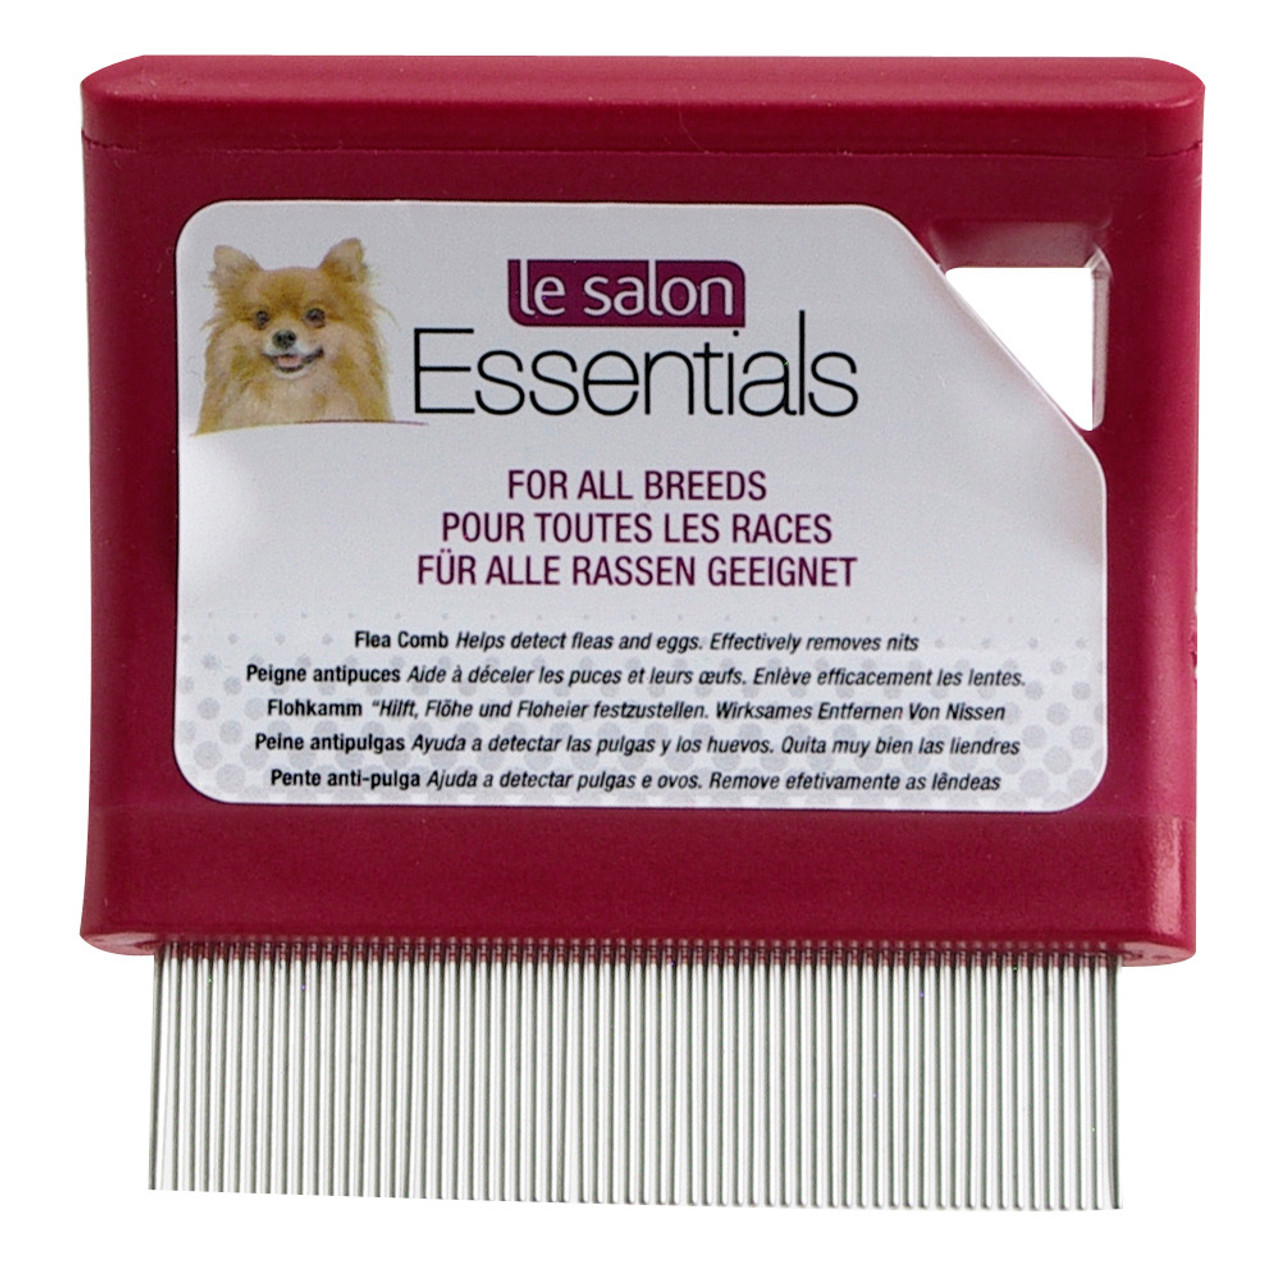 Le Salon Essentials Dog Flea Comb